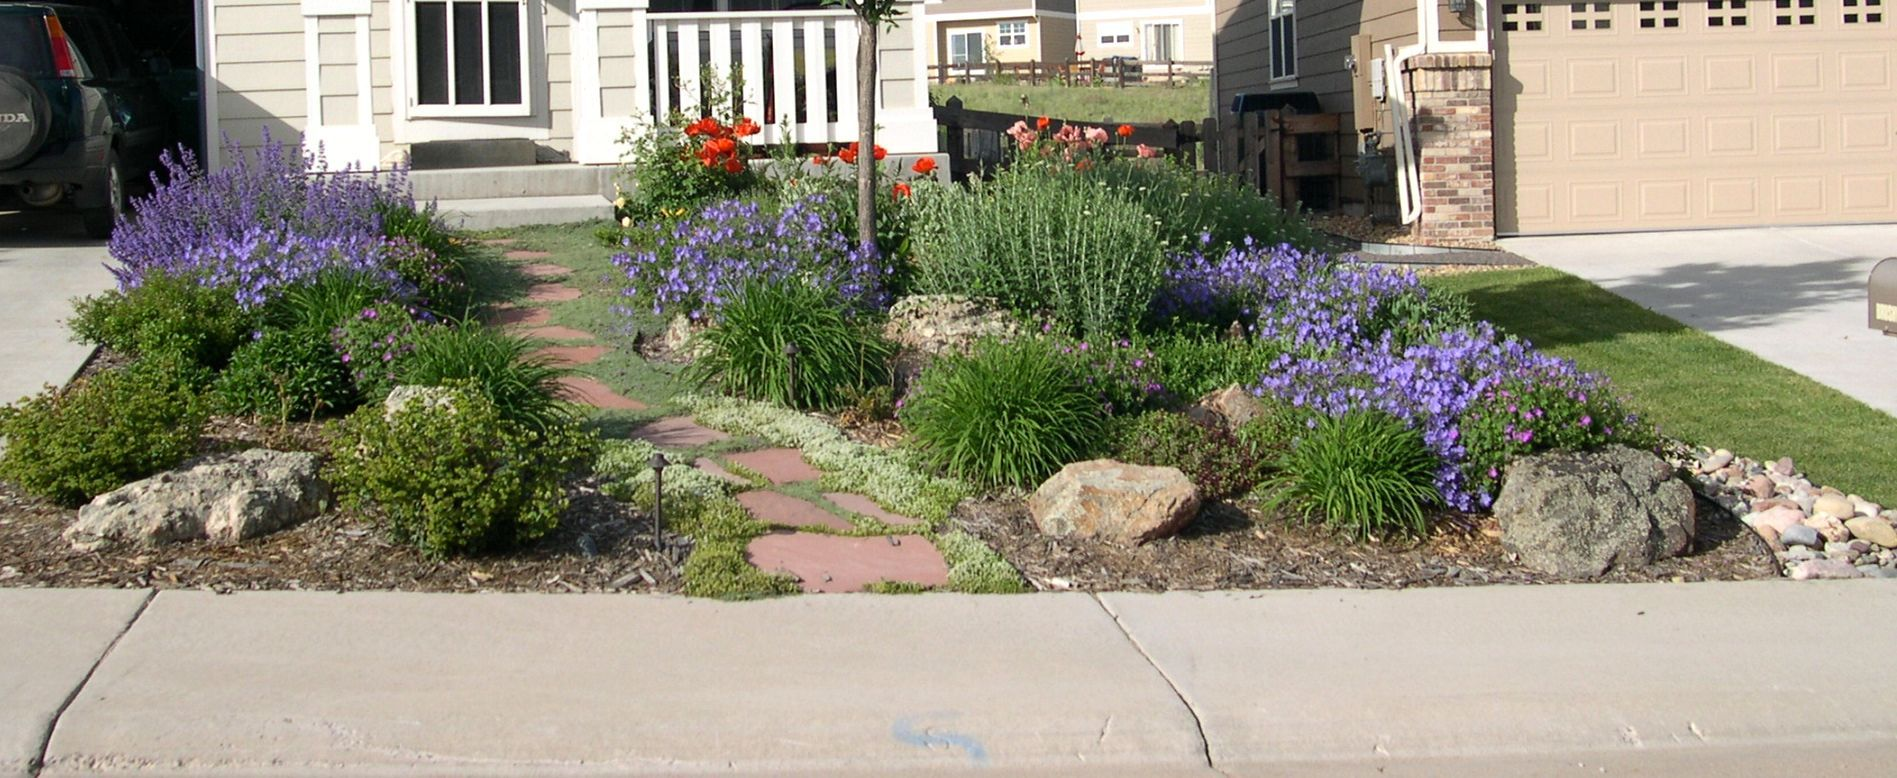 Small Yard Landscaping Ideas Xeriscape | The Garden ... on small desert yards, small cottage yards, small patio yards, small zen yards, small tropical yards, small concrete yards, small grass yards, small natural yards, small modern yards,